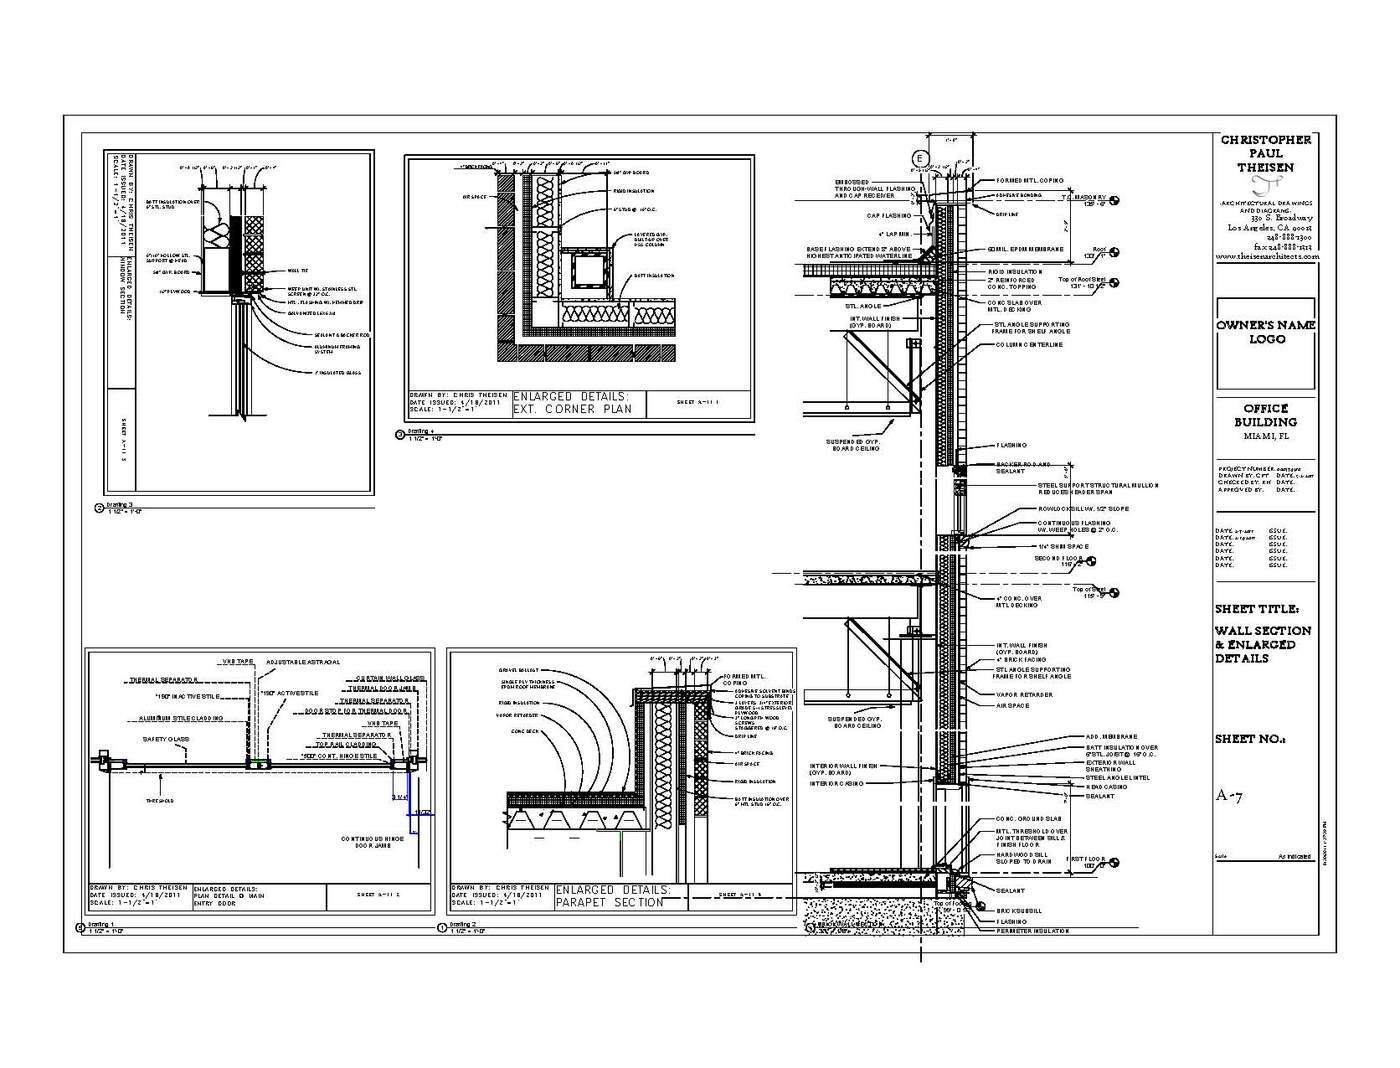 Construction Documents by Christopher Theisen at Coroflot.com